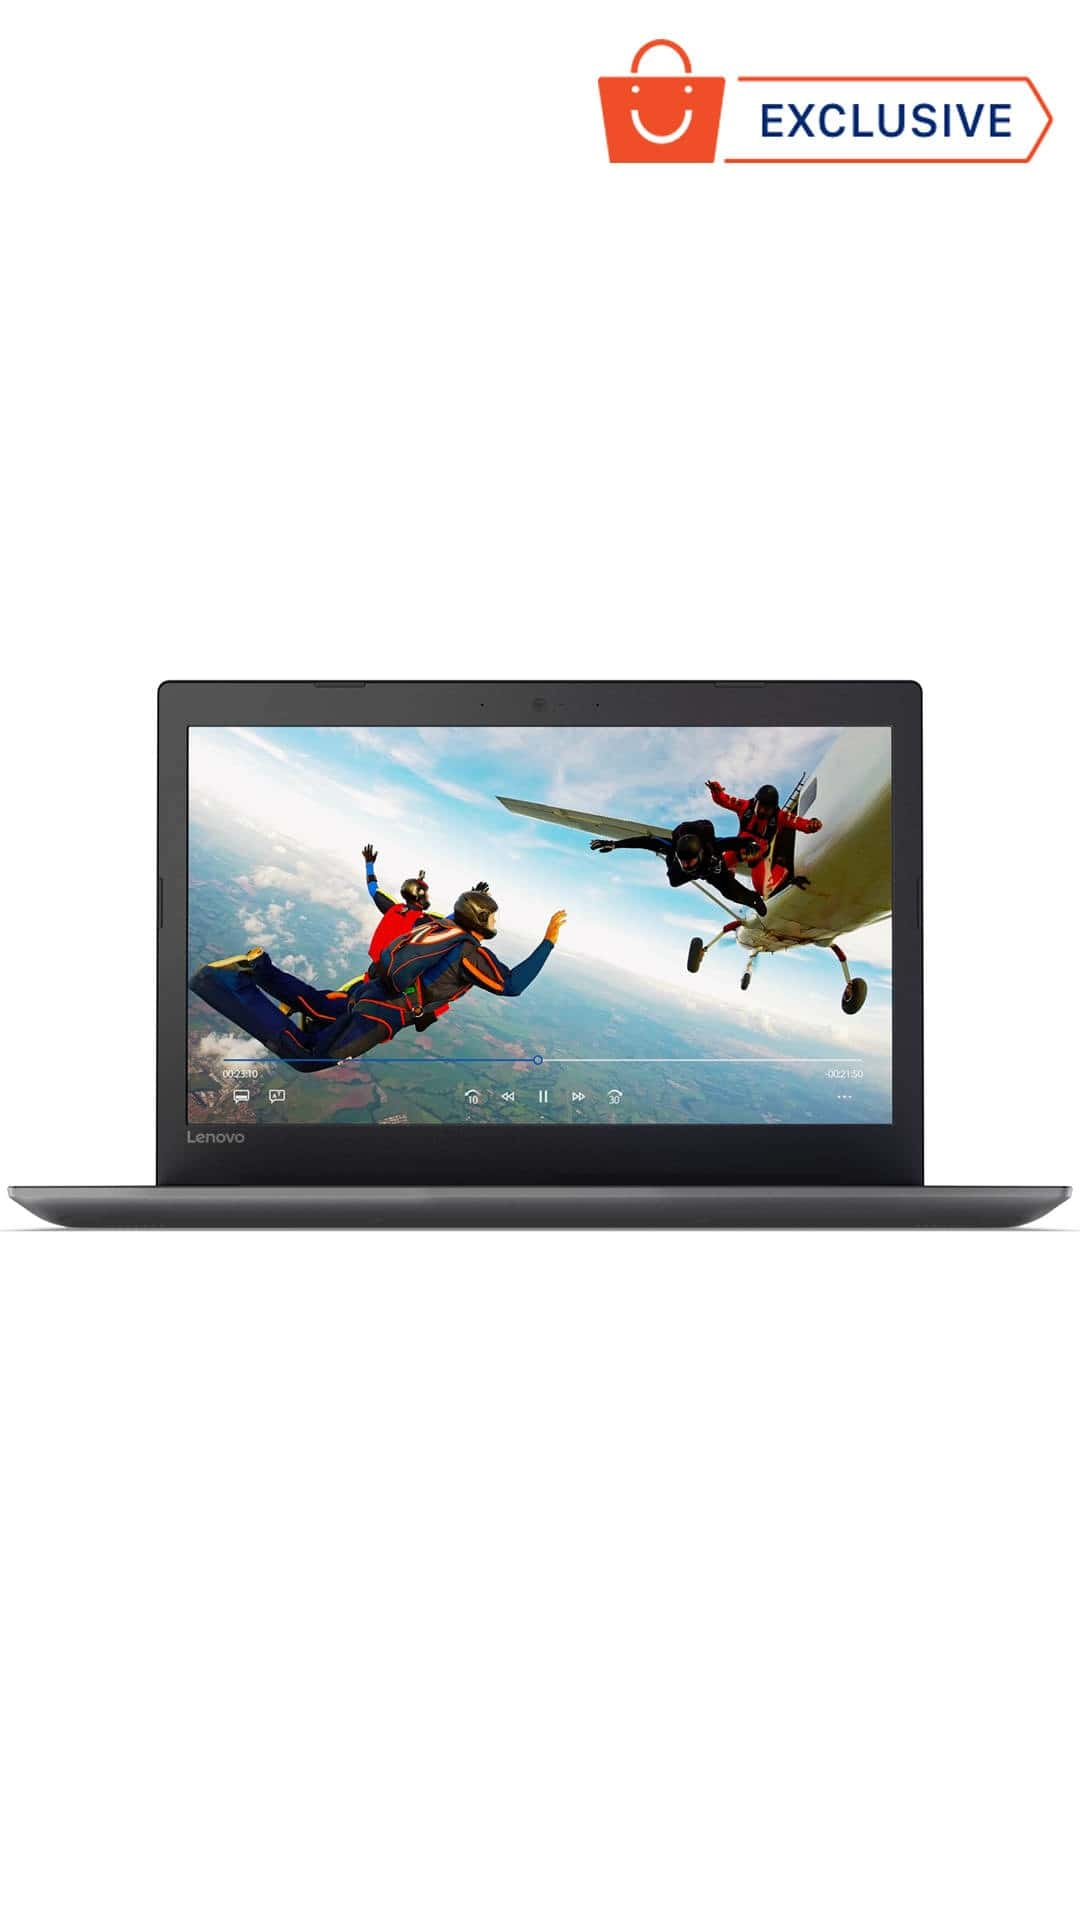 "Lenovo Notebook IP 310-15IKB (80TV02FGIH) (Intel Core i5 (7th Gen)/8GB/ 1TB HDD/15.6"" (39.62cm)/DOS) (Black)"